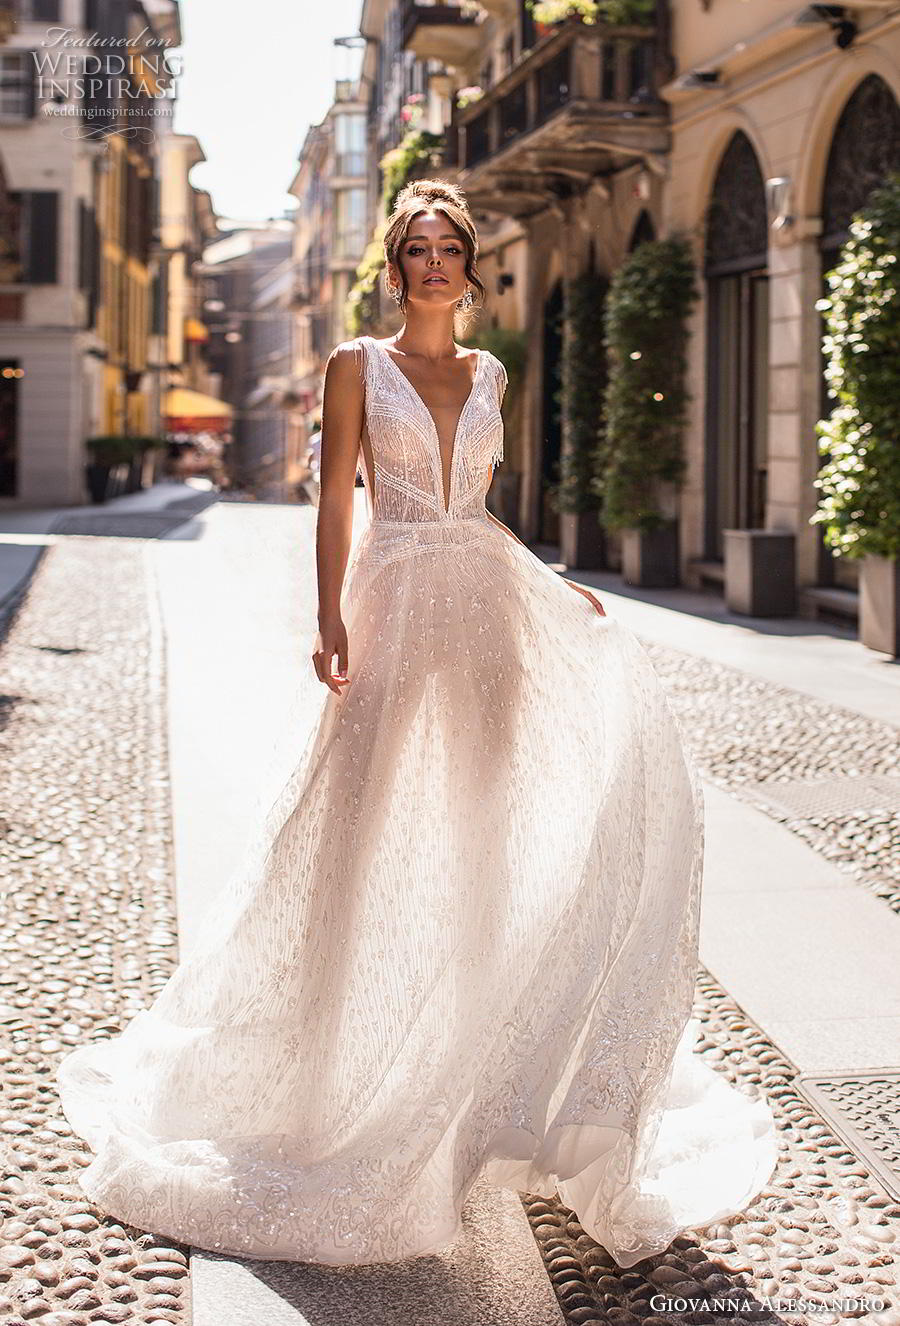 giovanna alessandro 2019 bridal sleeveless fringe strap deep v neck full embellishment open side romantic soft a  line wedding dress v back chapel train (8) mv